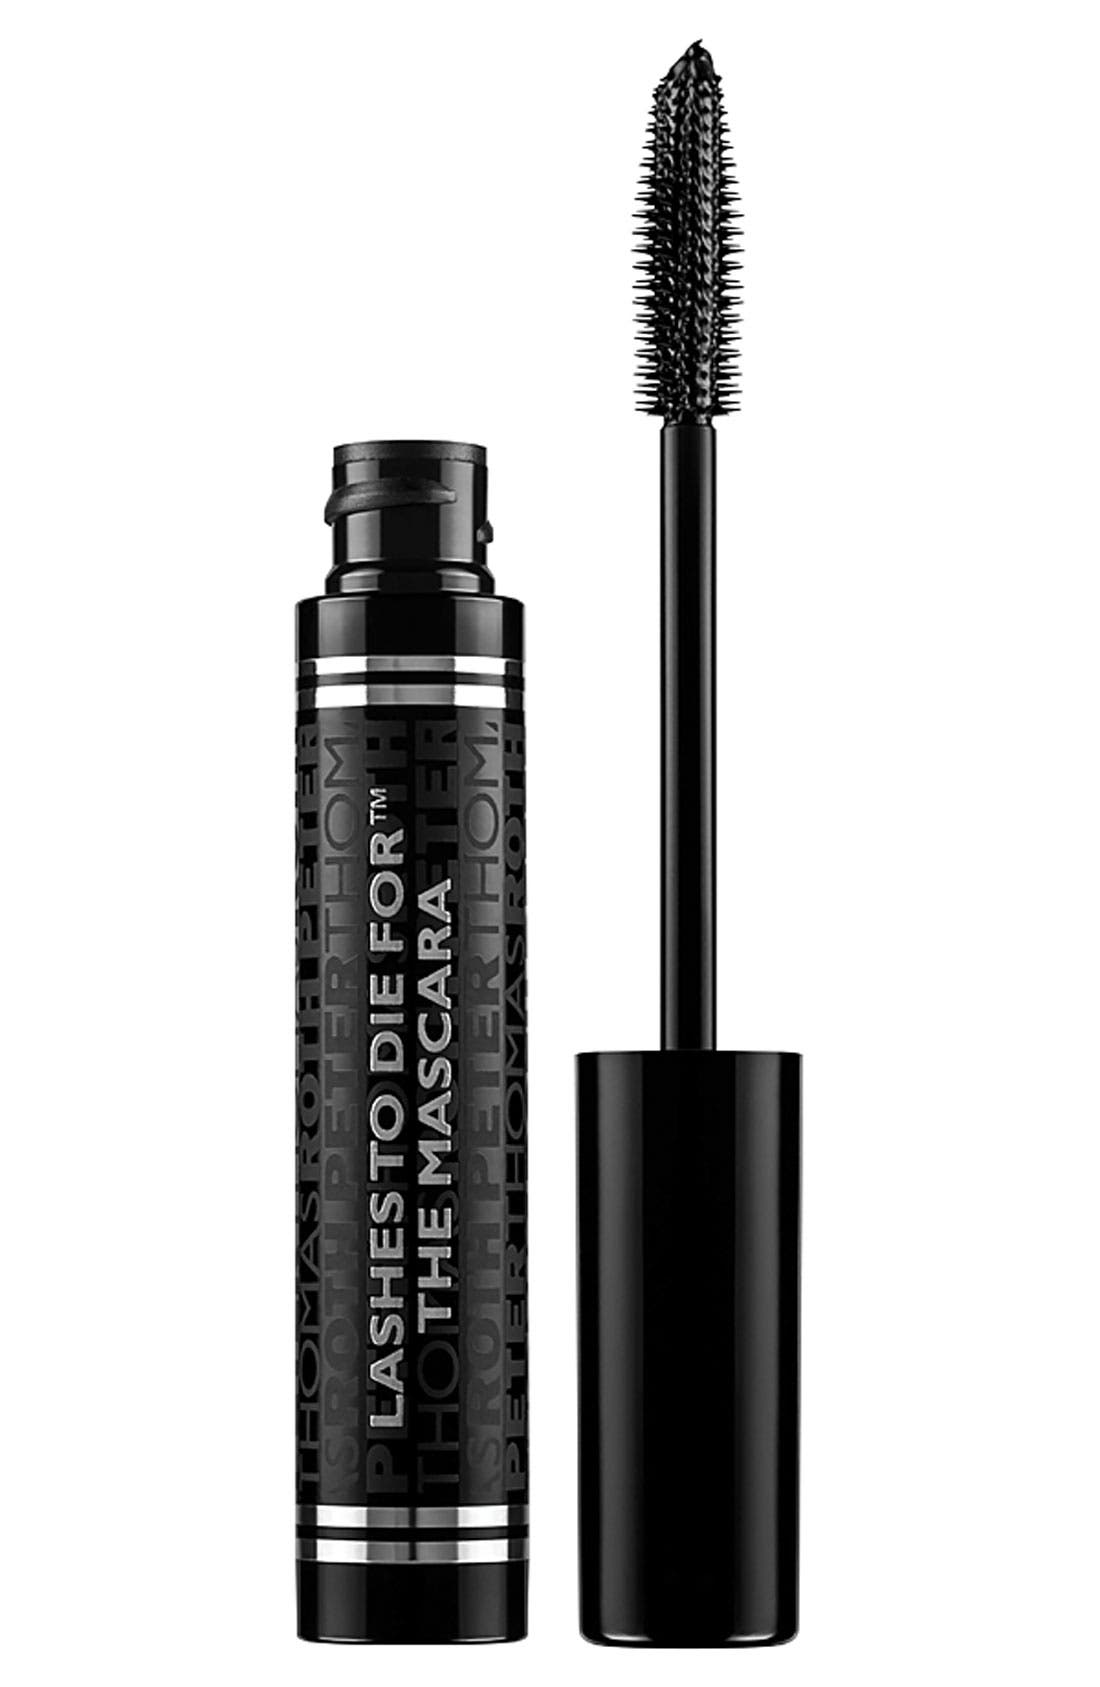 PETER THOMAS ROTH Lashes to Die For Mascara, Main, color, NO COLOR